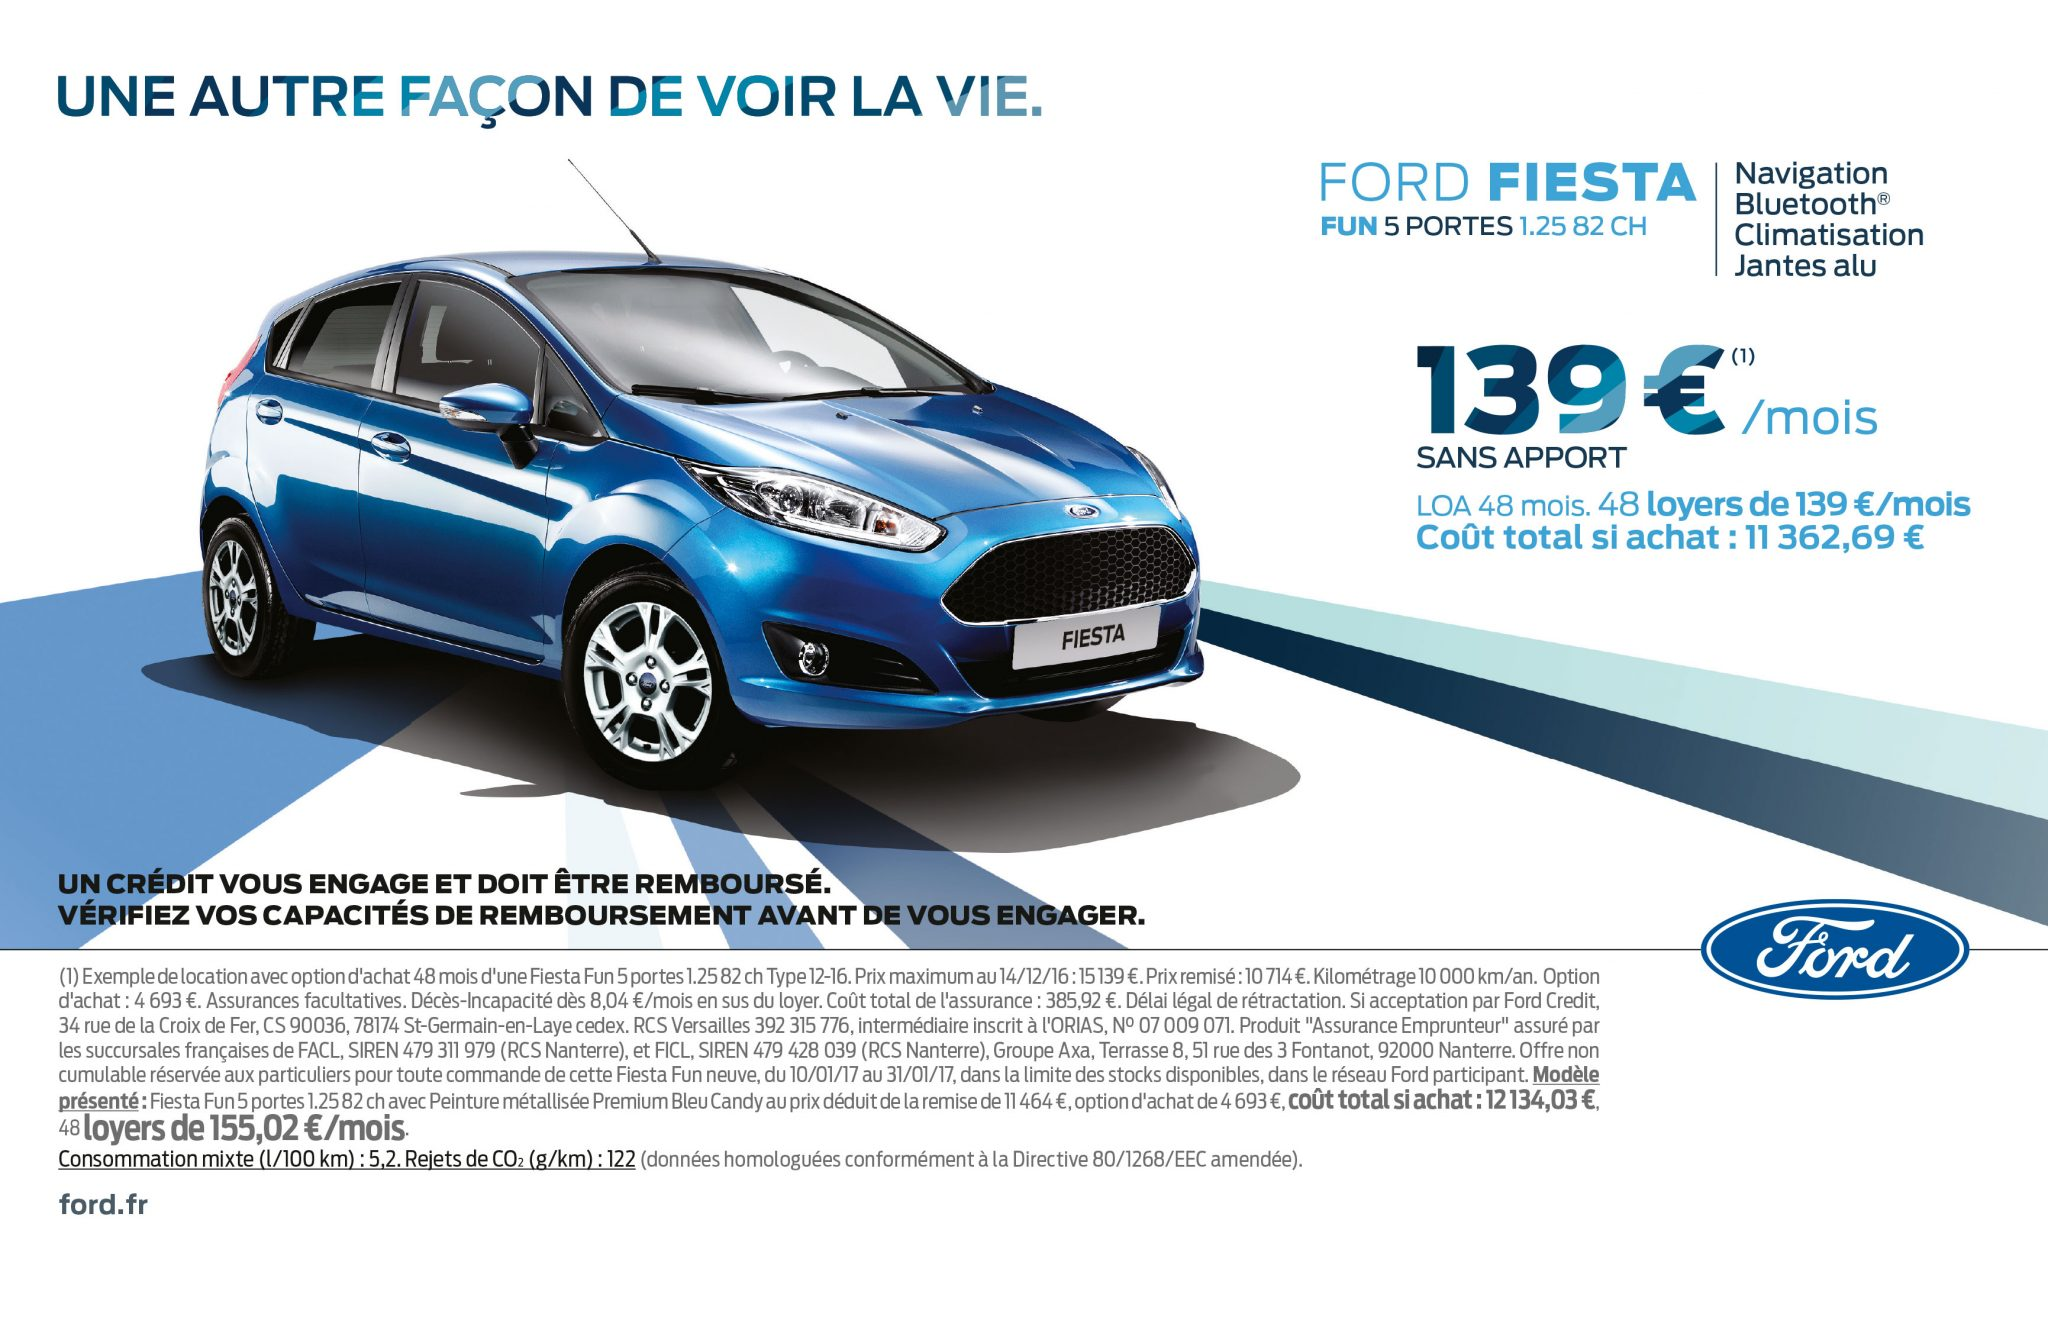 la ford fiesta fun 5 portes 82 ch est 139 mois. Black Bedroom Furniture Sets. Home Design Ideas